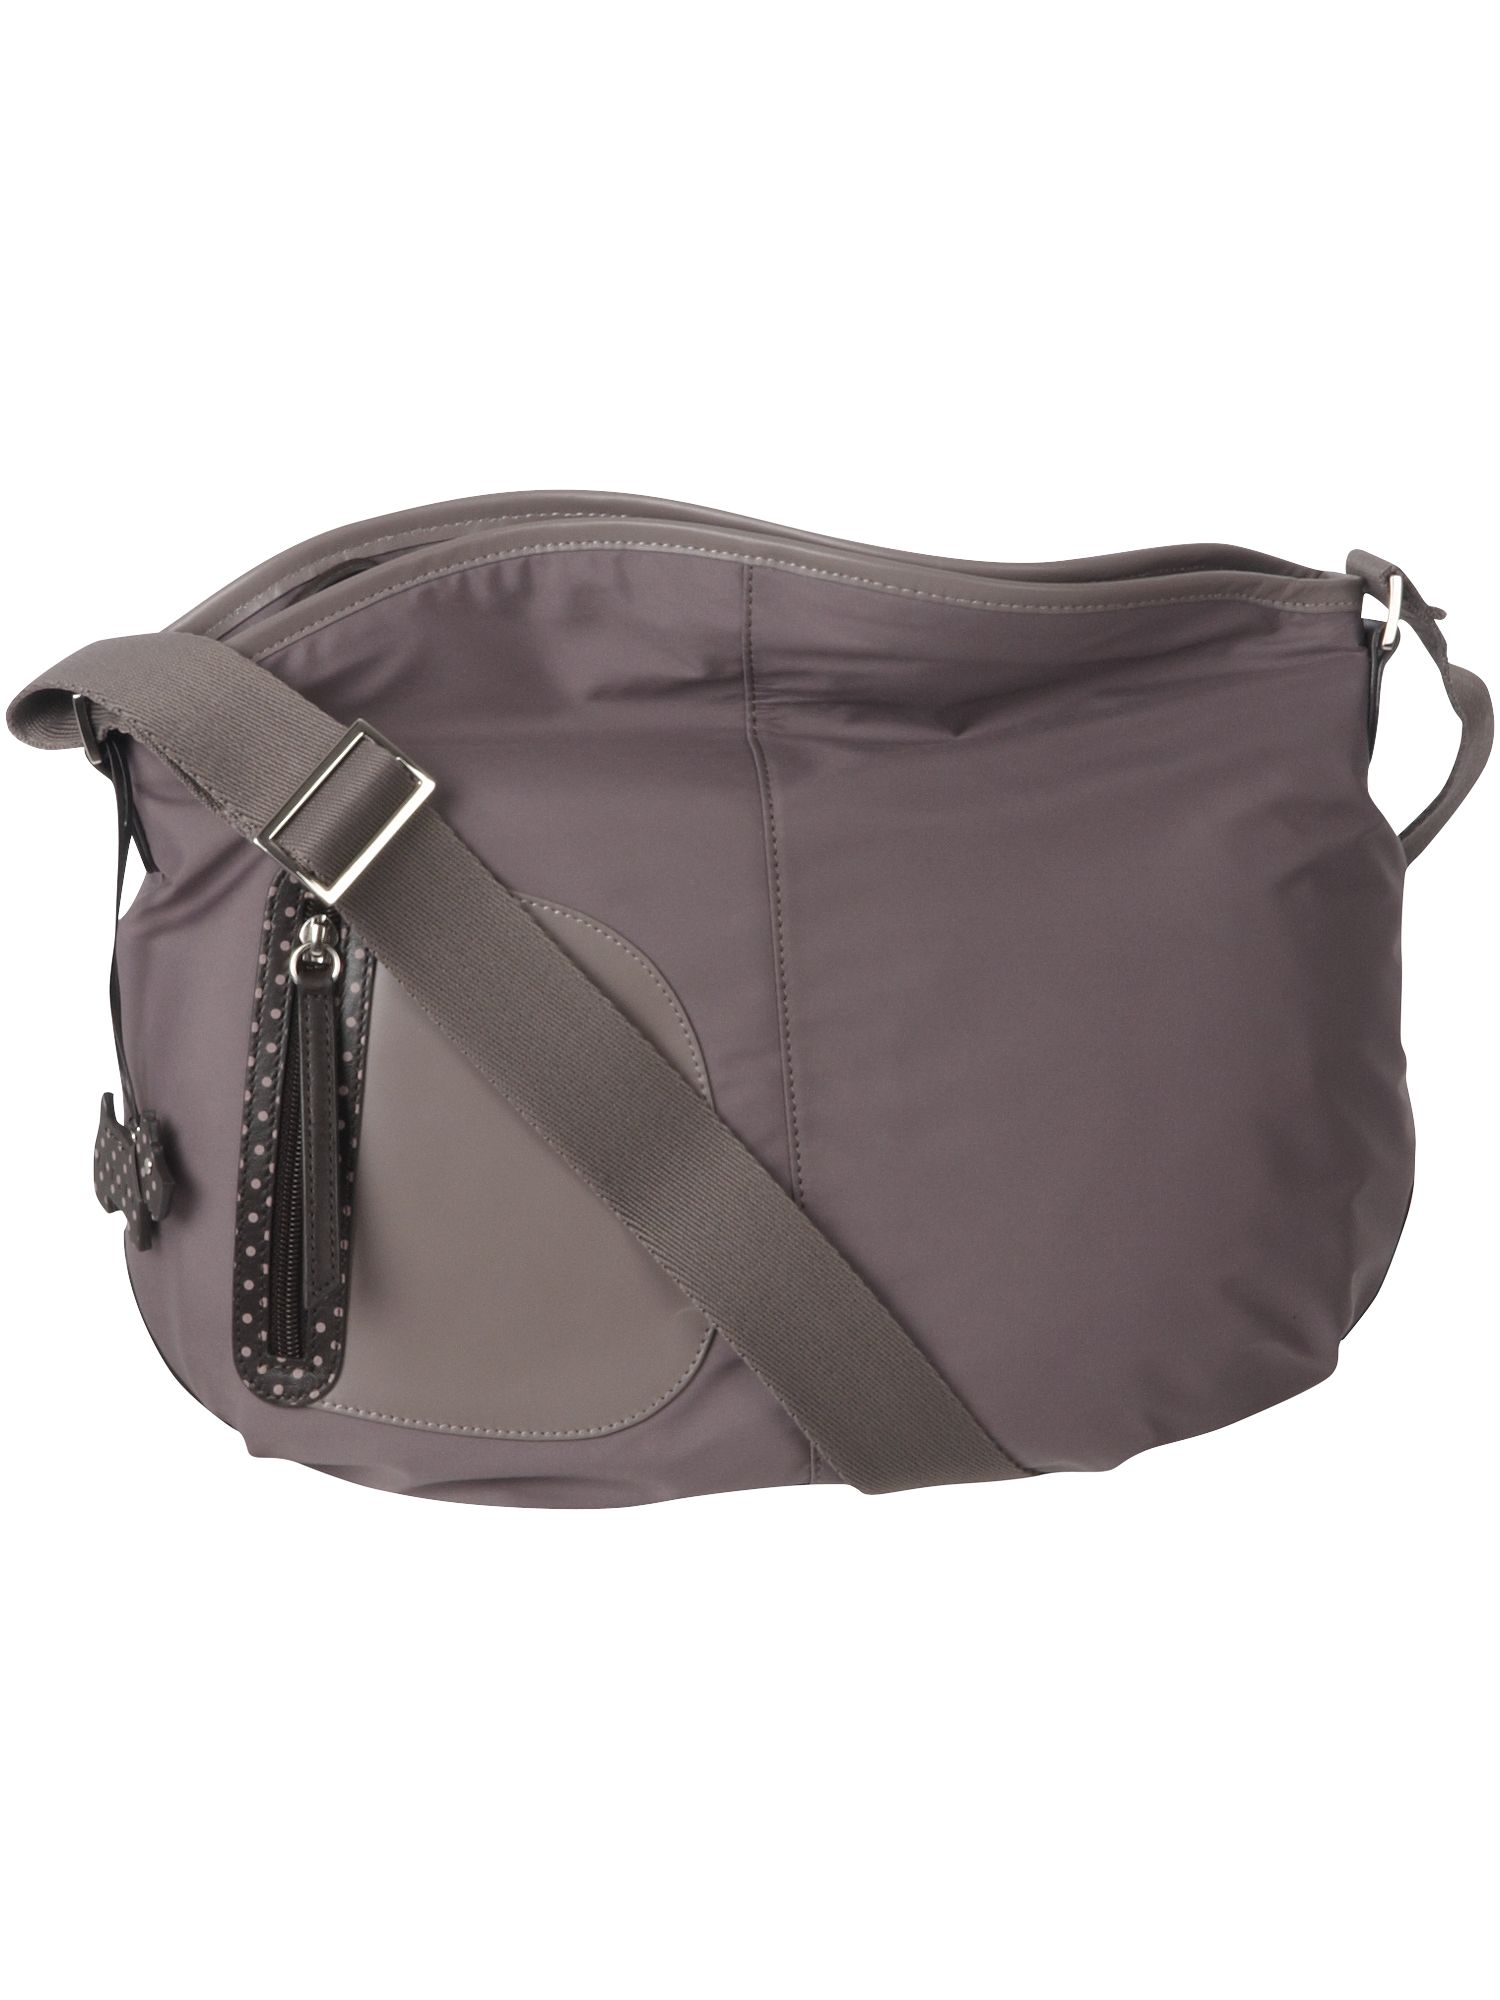 Pursuit large nylon cross body bag